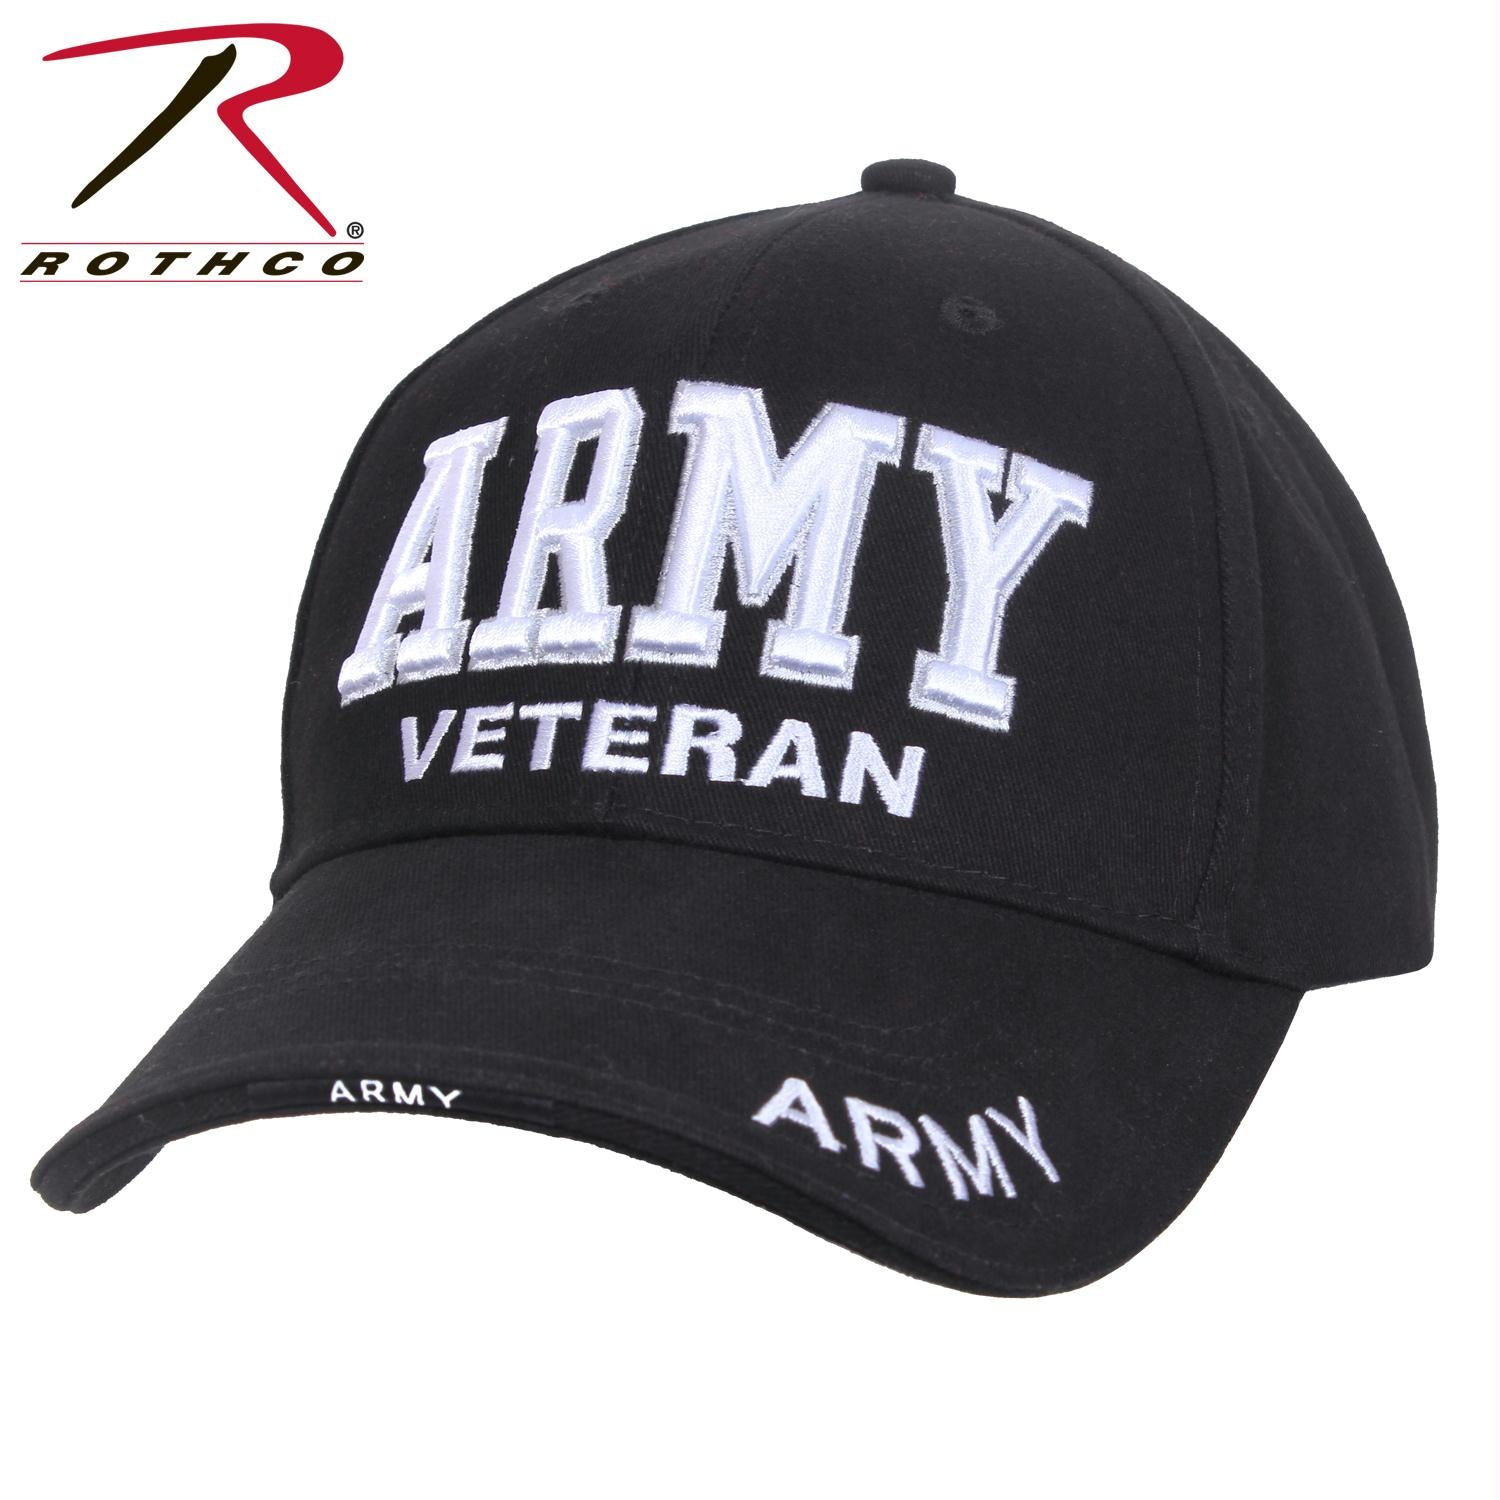 Rothco Deluxe Army Veteran Low Profile Cap - Black / White / One Size